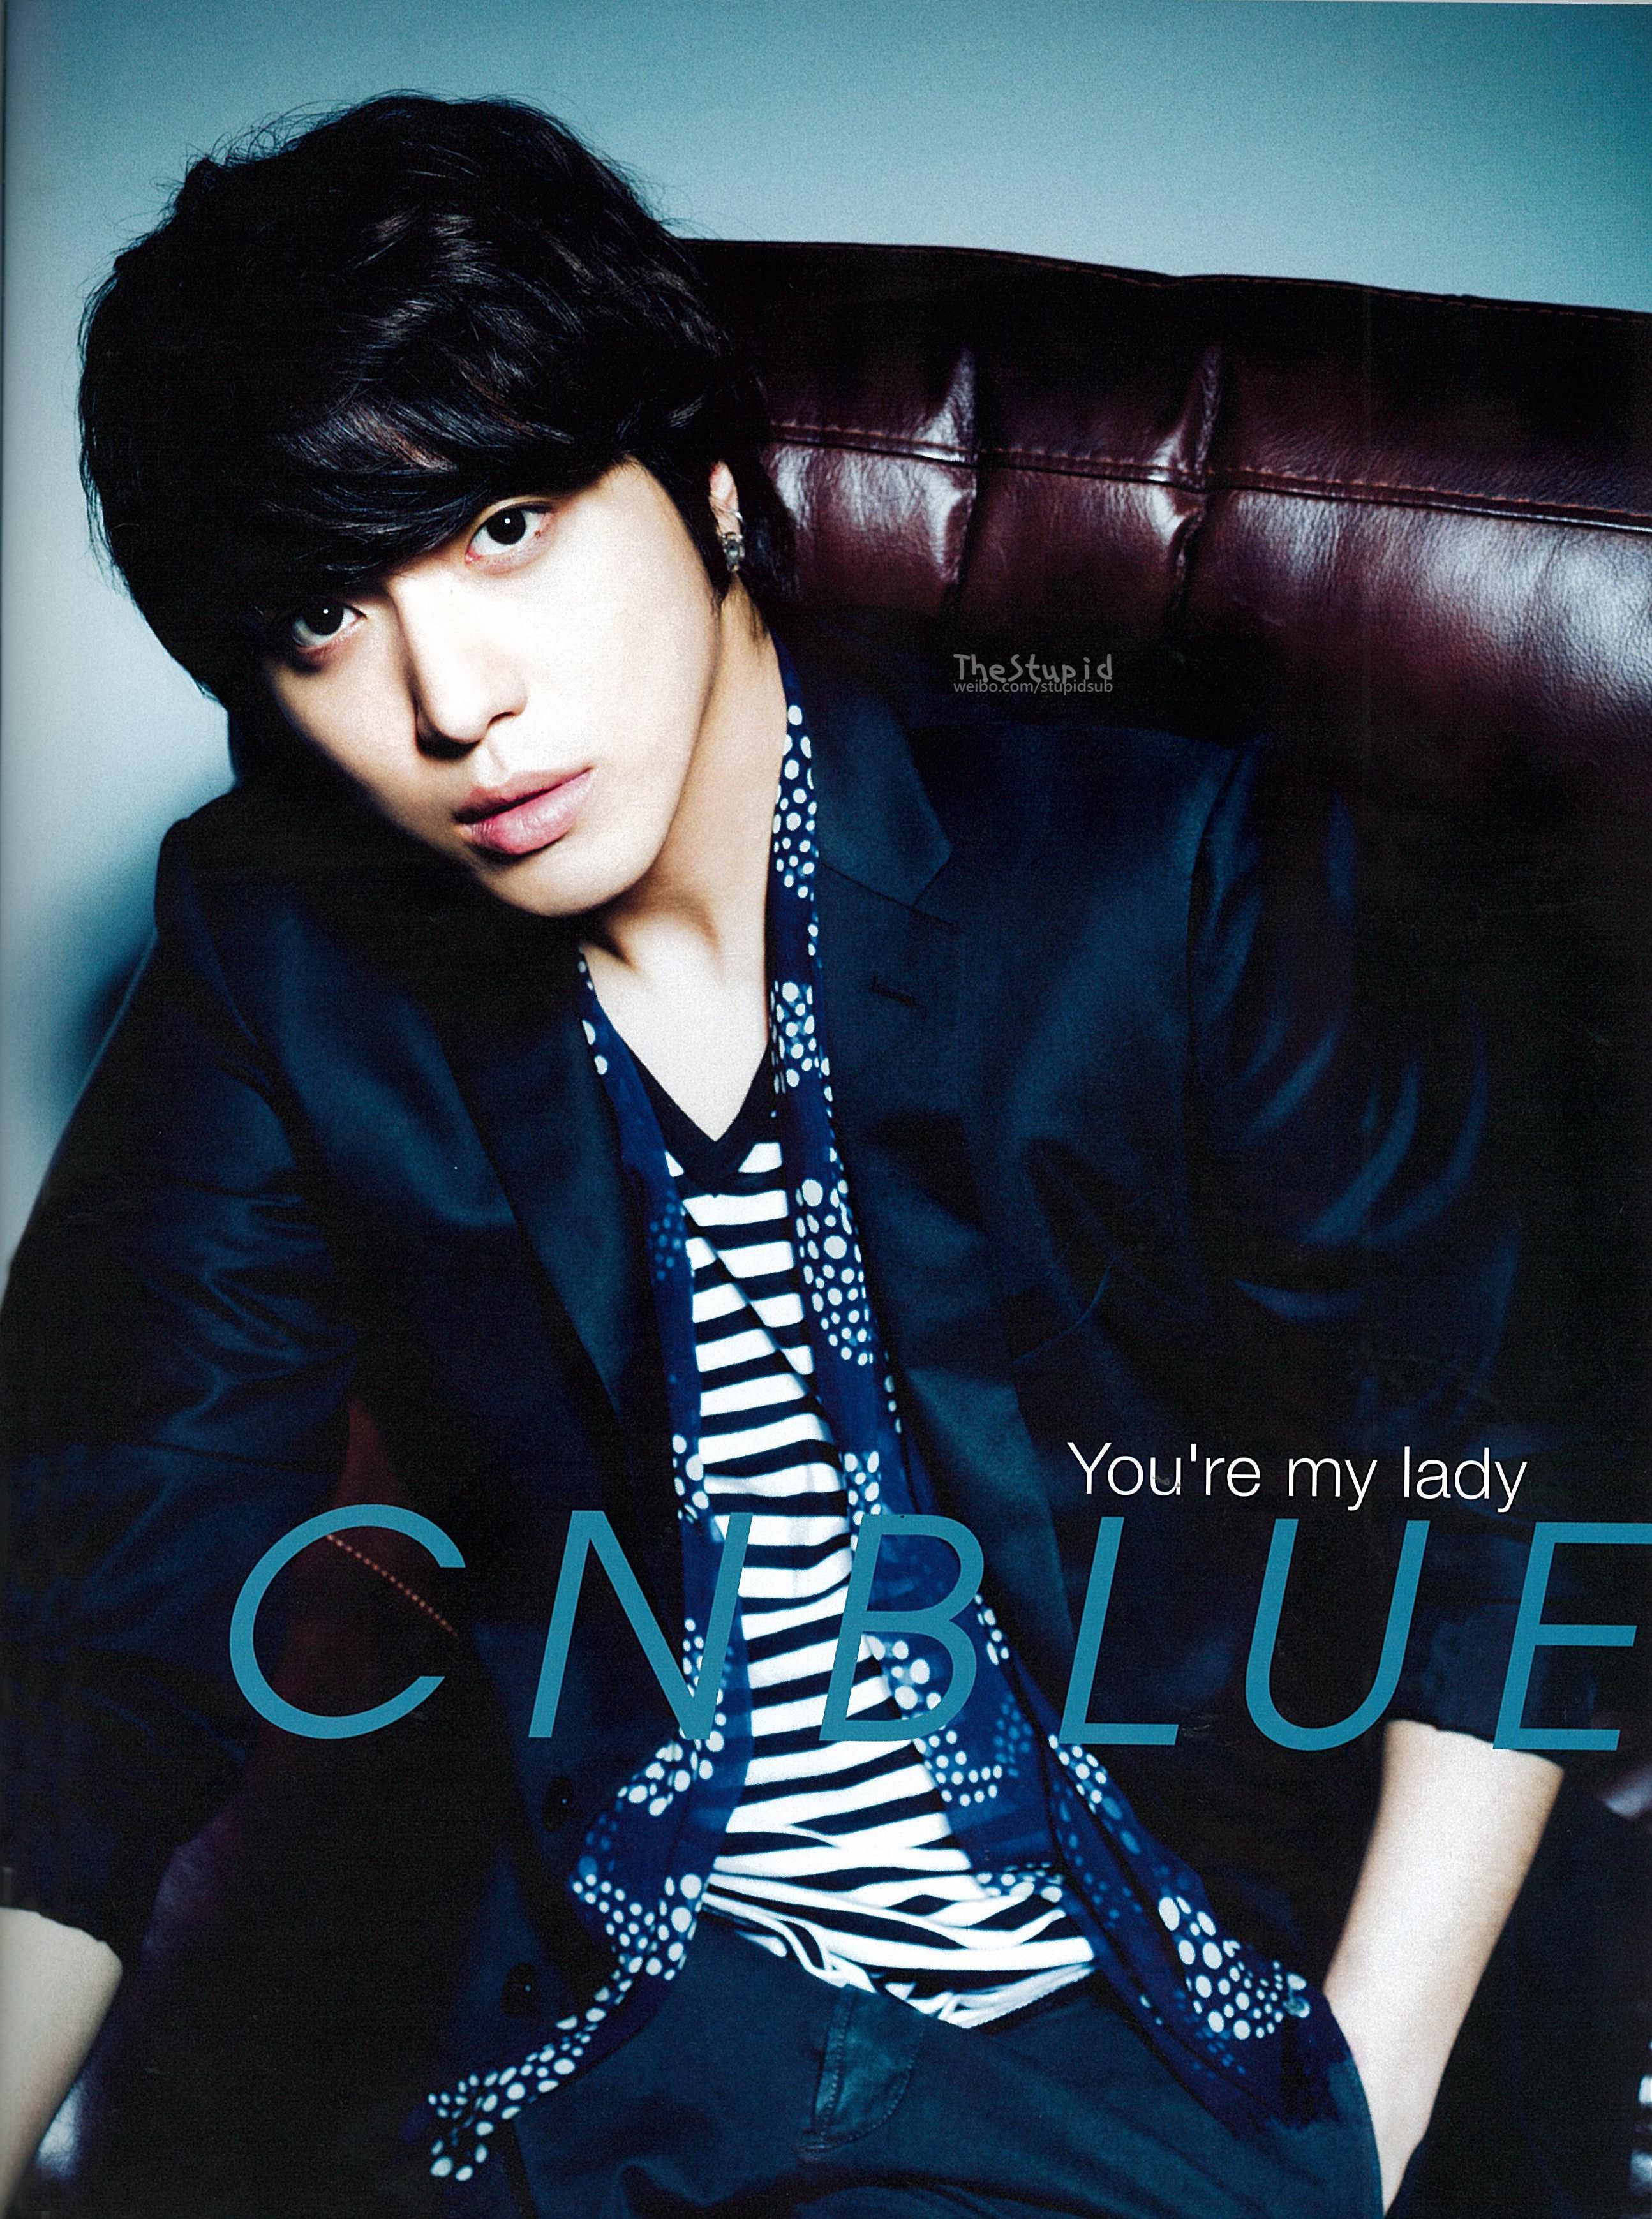 Cnblue Android Iphone Wallpaper Asiachan Kpop Jpop Image Board